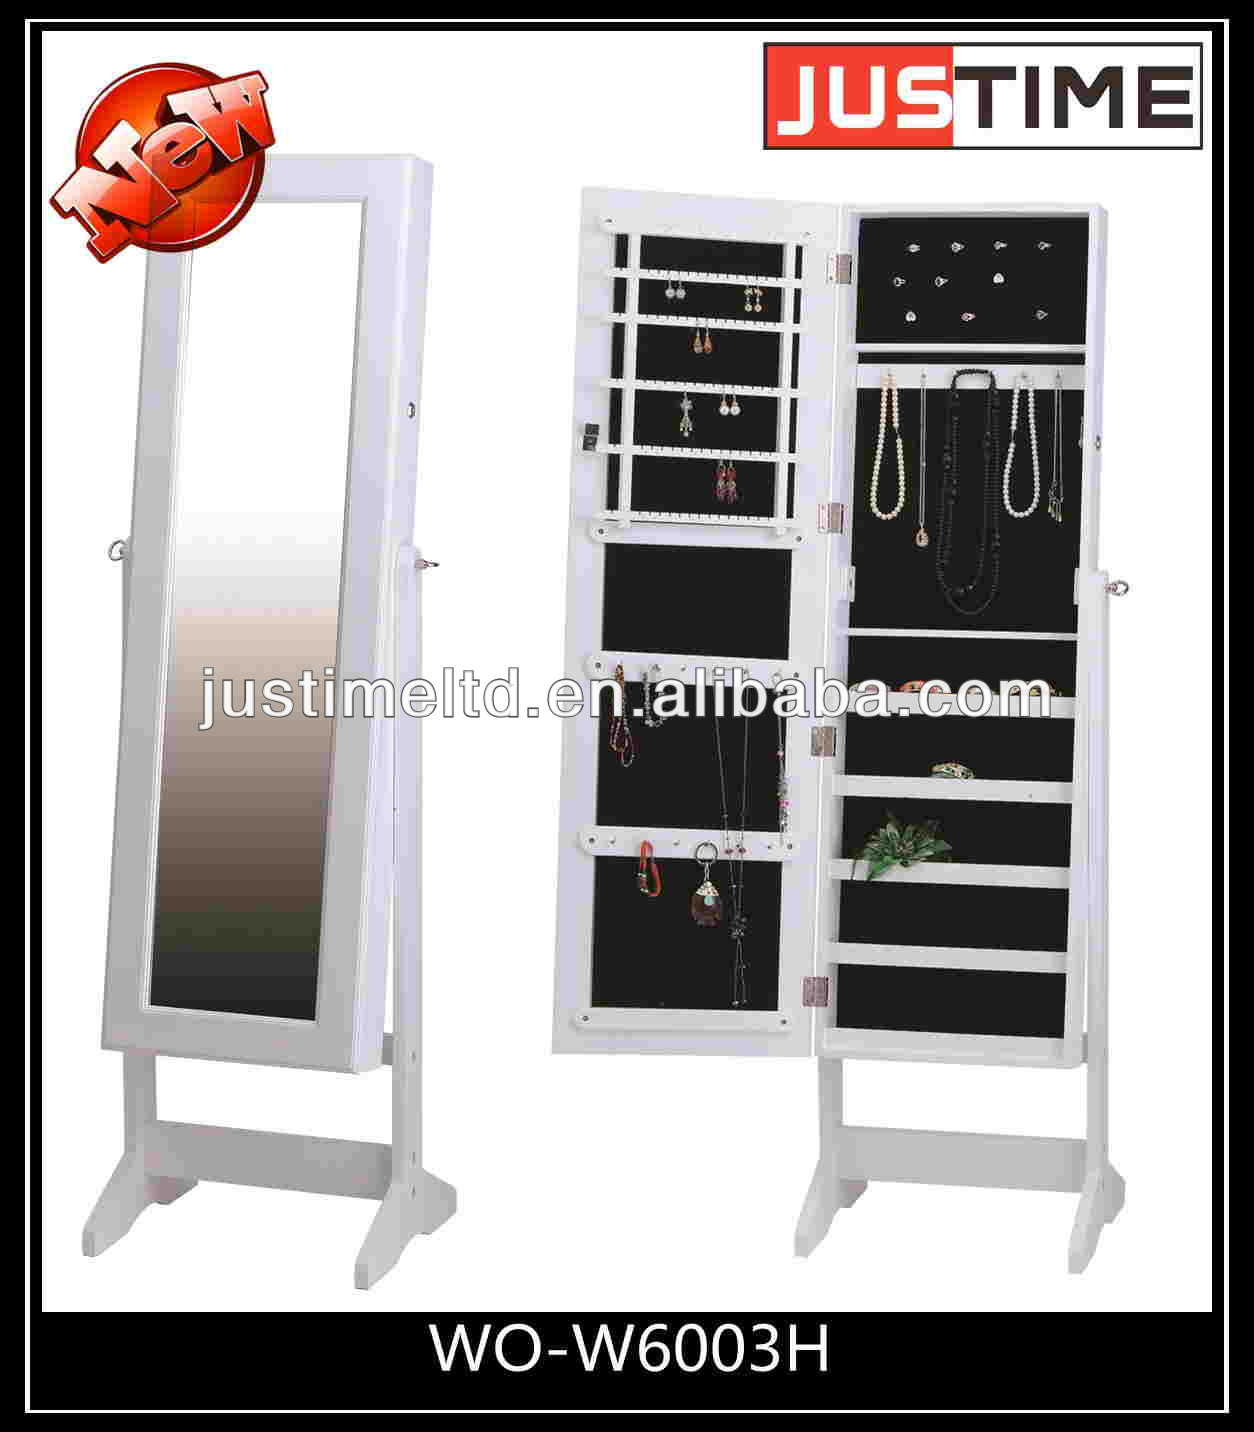 Dressing Mirror Cabinet Theatre Dressing Room Mirror Theatre Dressing Room Mirror